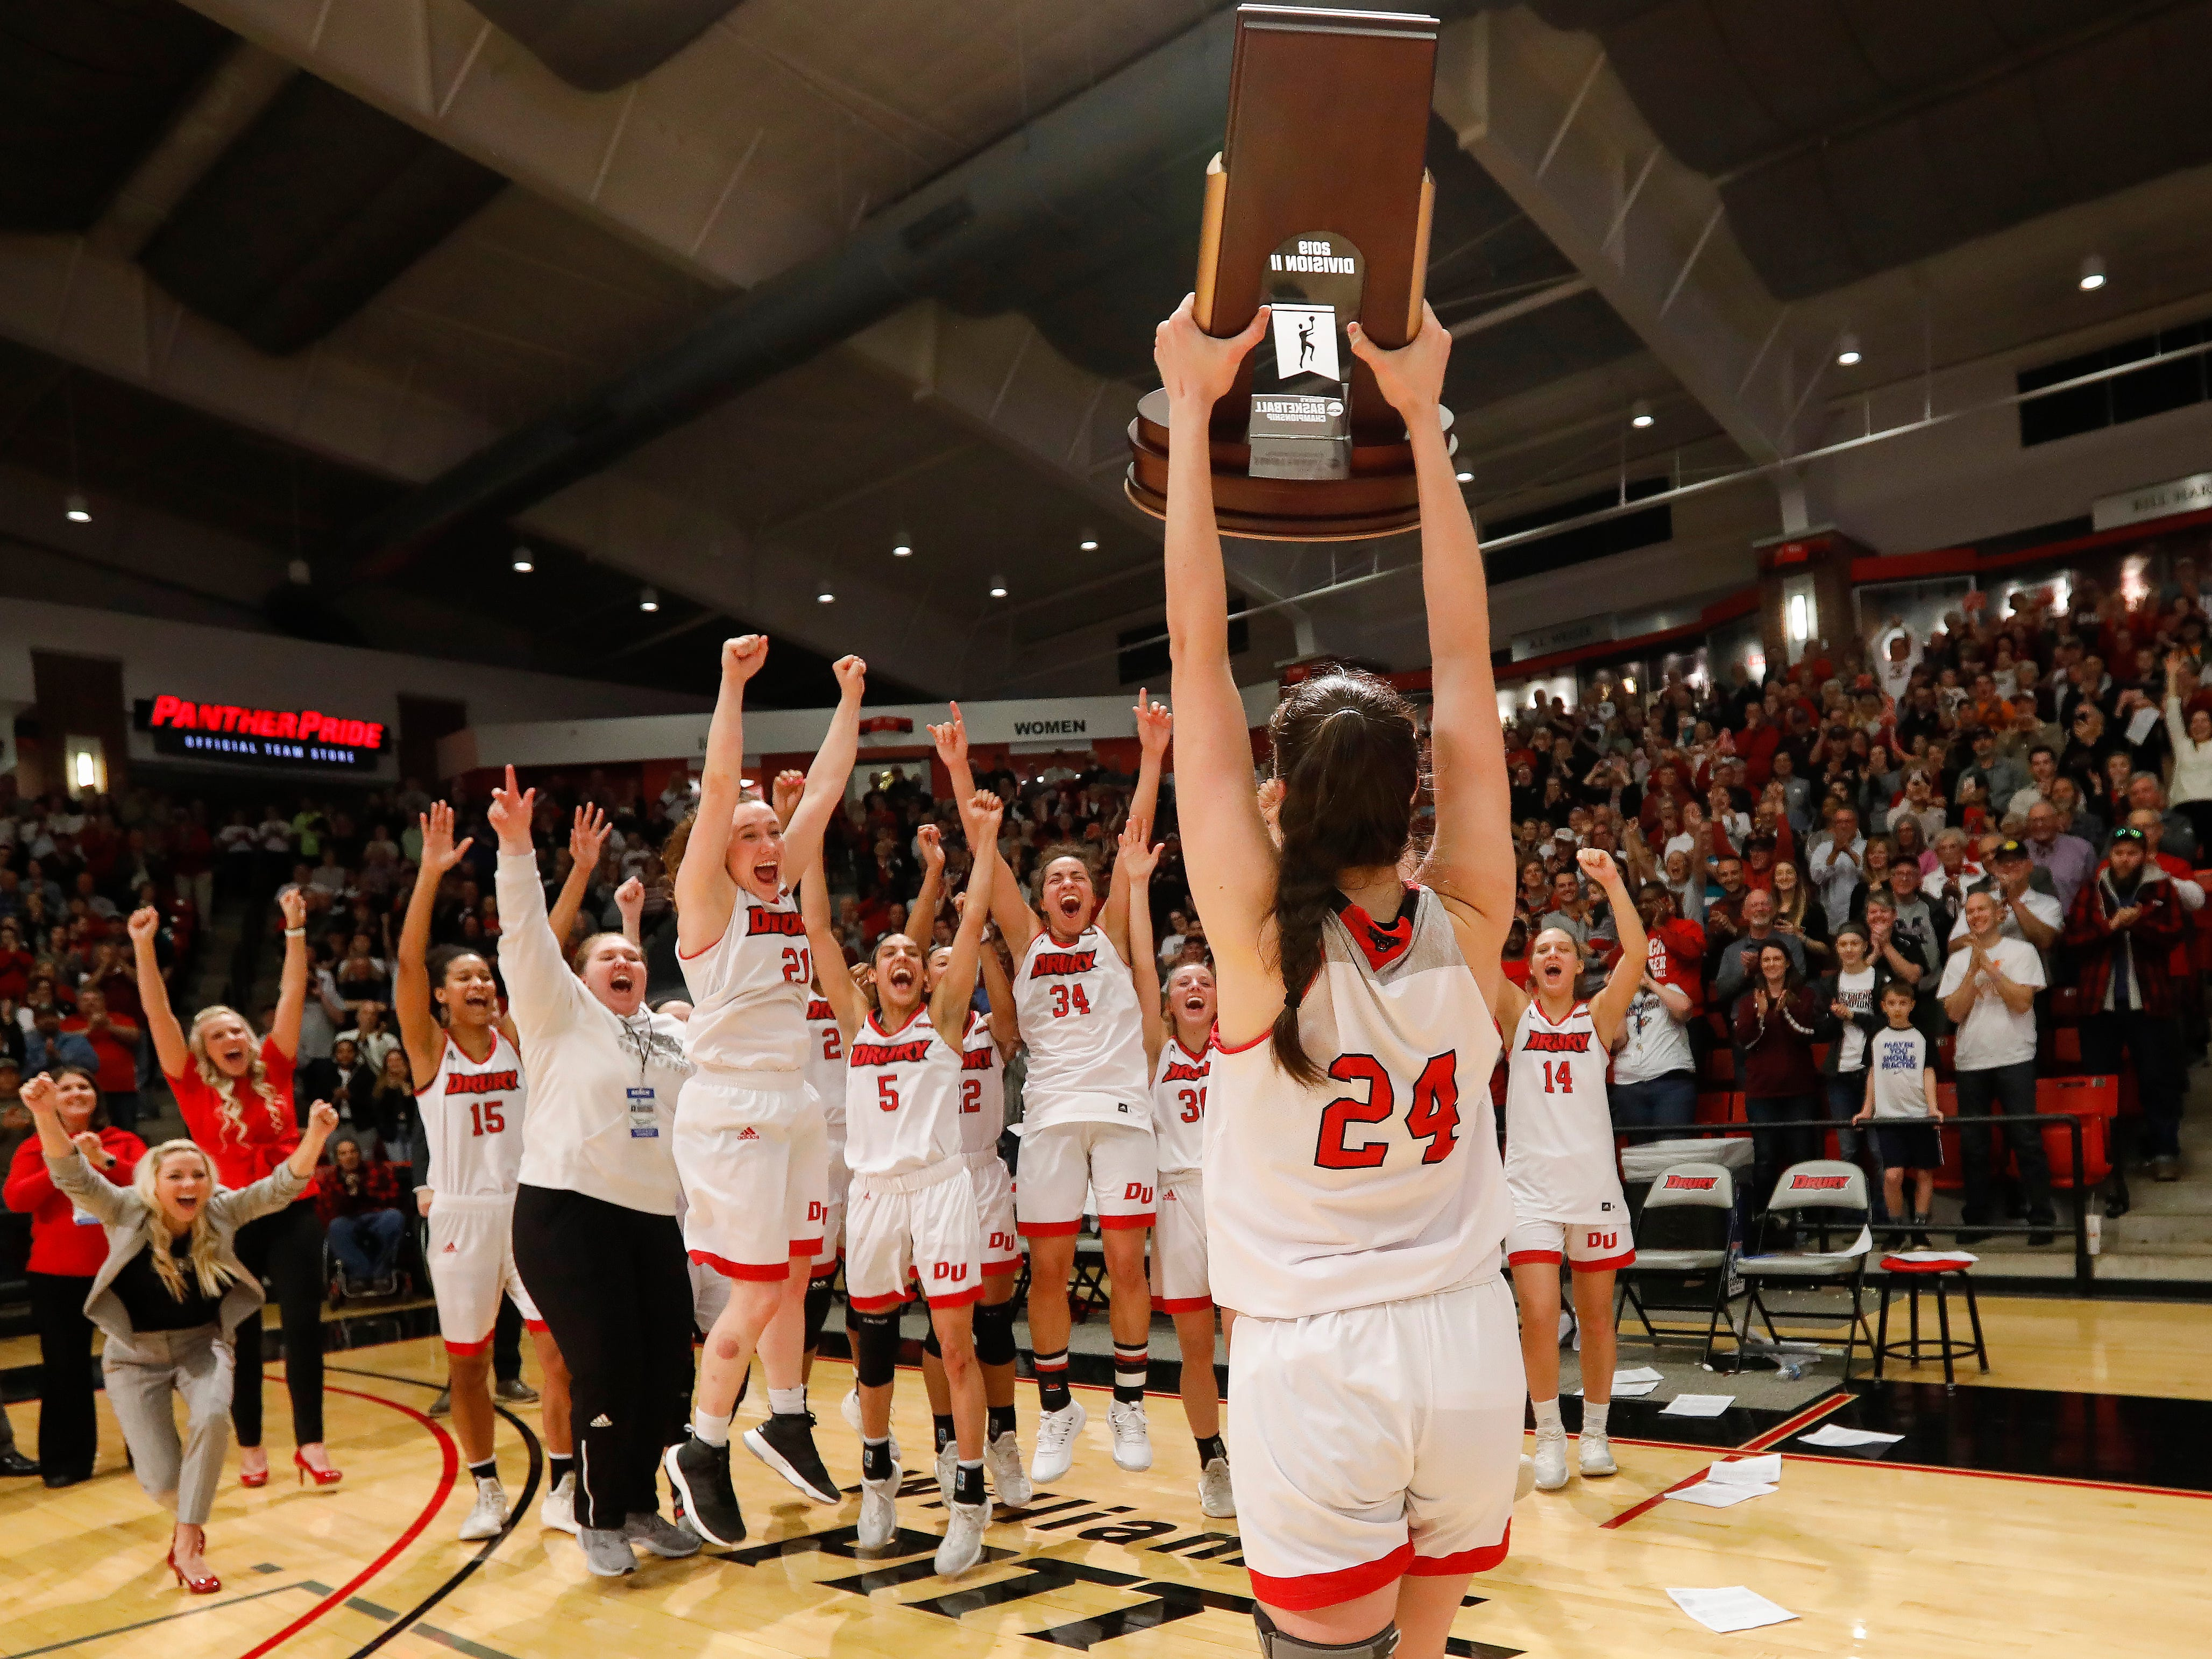 Drury celebrates their 51-44 over Grand Valley to win the NCAA Division II Midwest Regional Championship game at the O'Reilly Family Event Center on Monday, March 18, 2019.